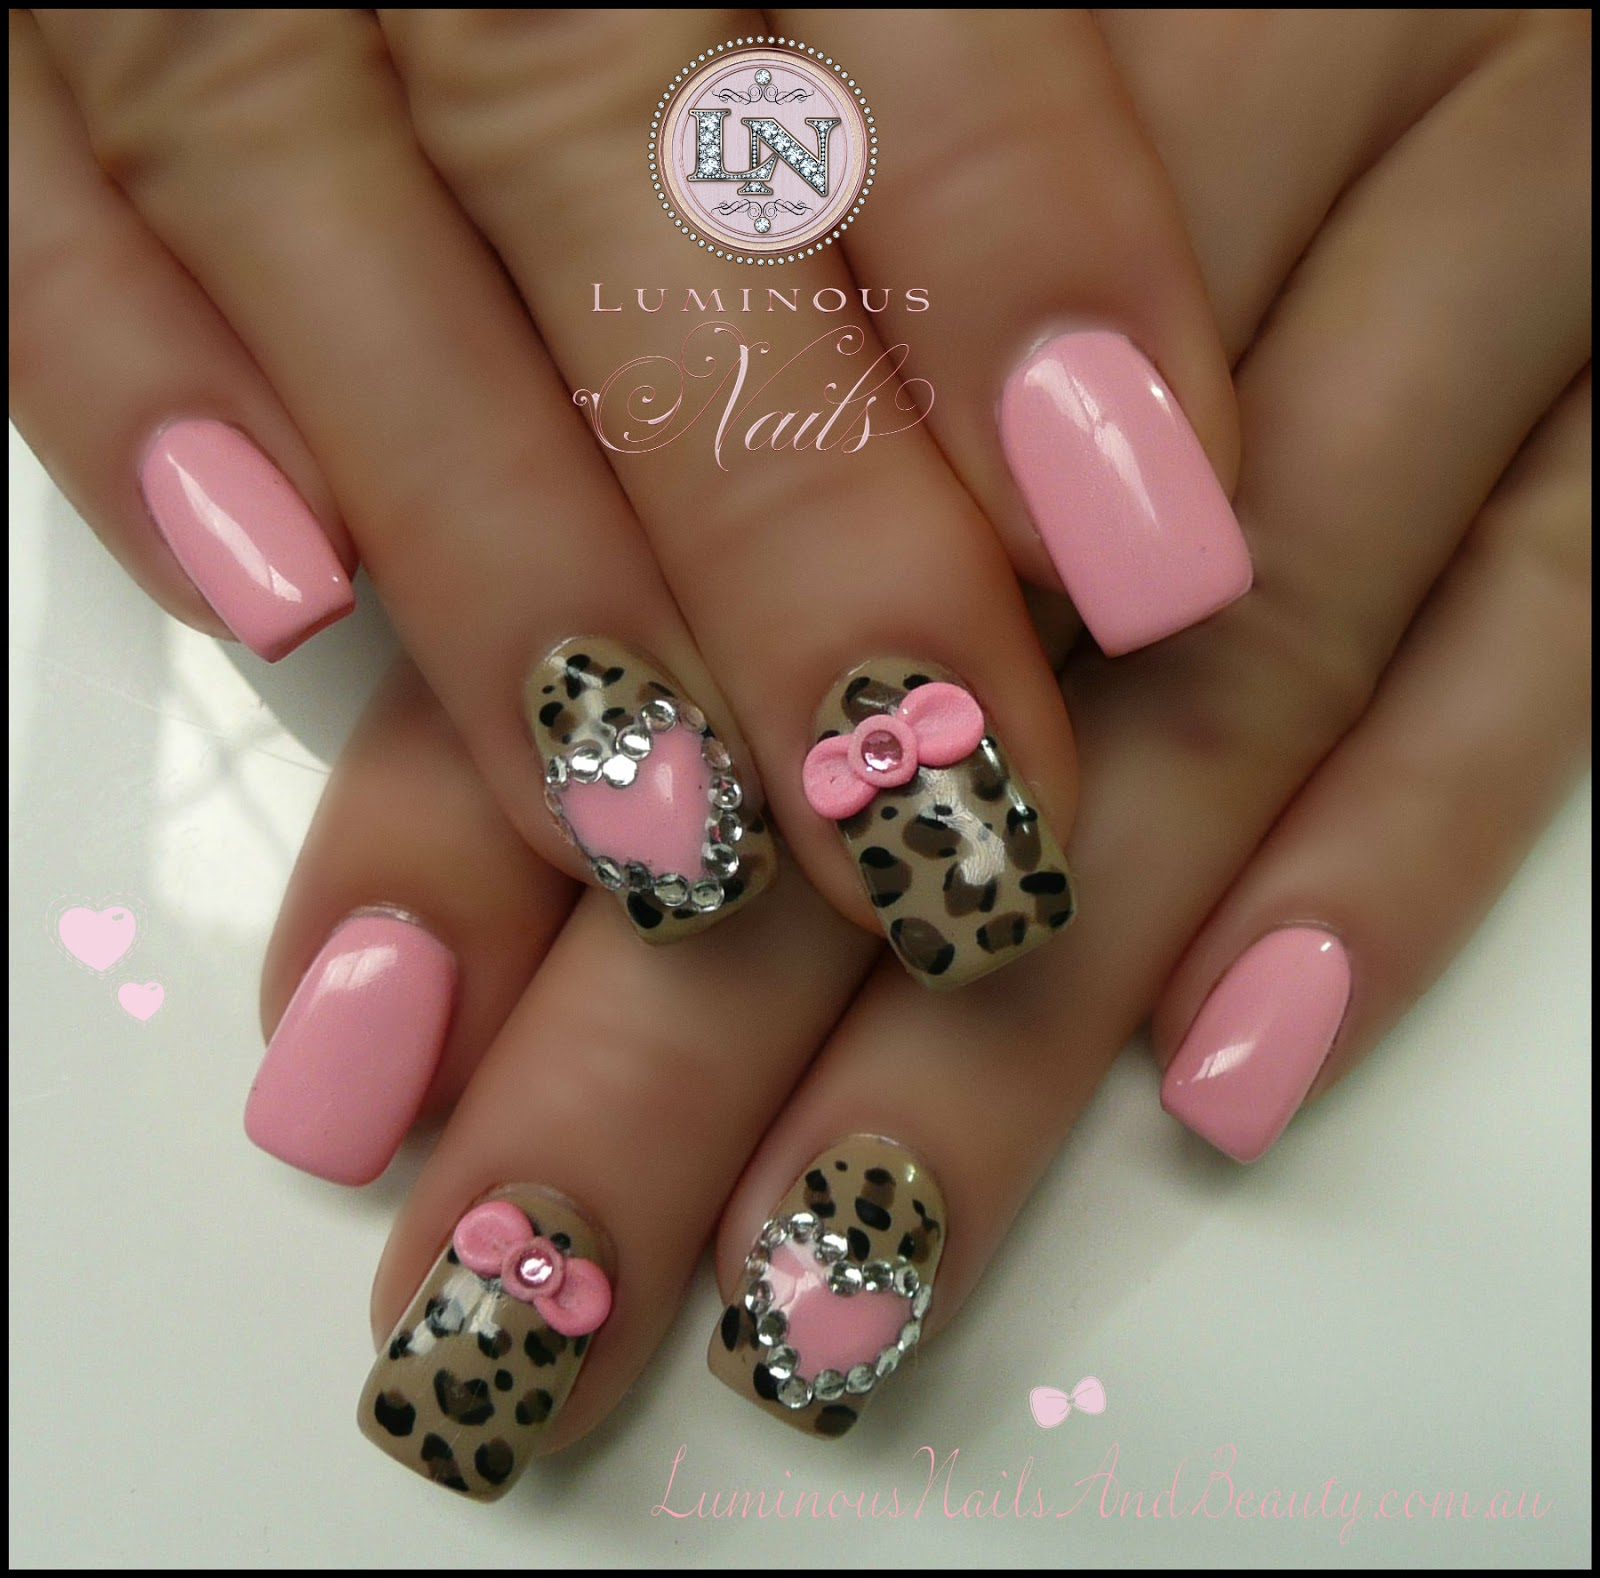 Nails 2c gel nails 2c sculptured gel with custom pink gel 2c custom